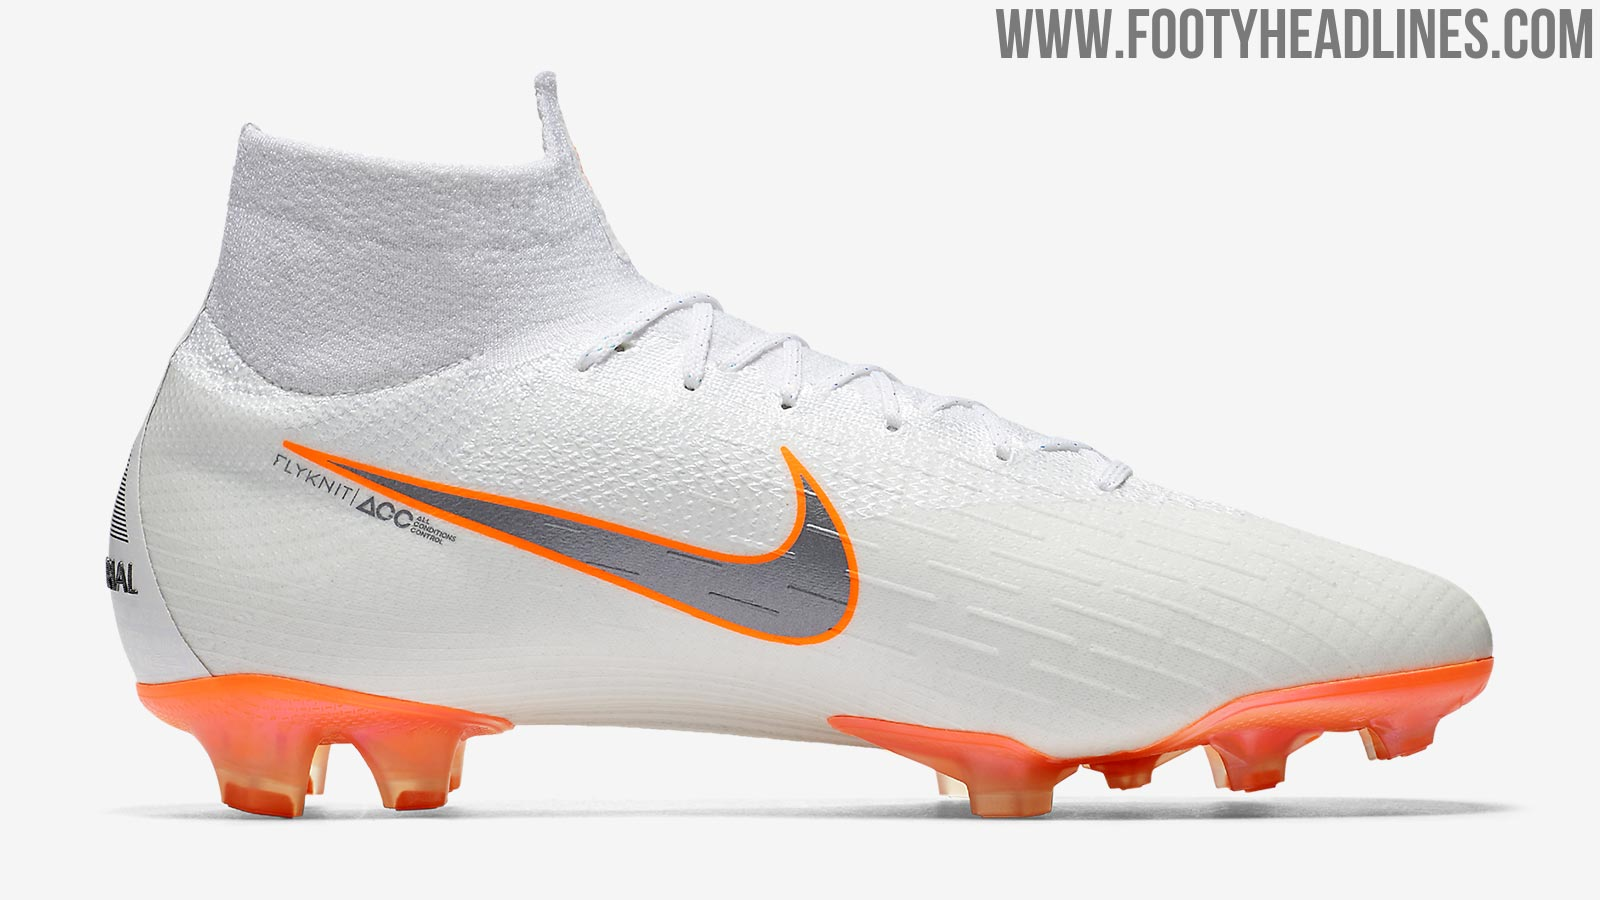 online store c9cdd d9875 denmark nike mercurial superfly world cup 63ca4 08e12